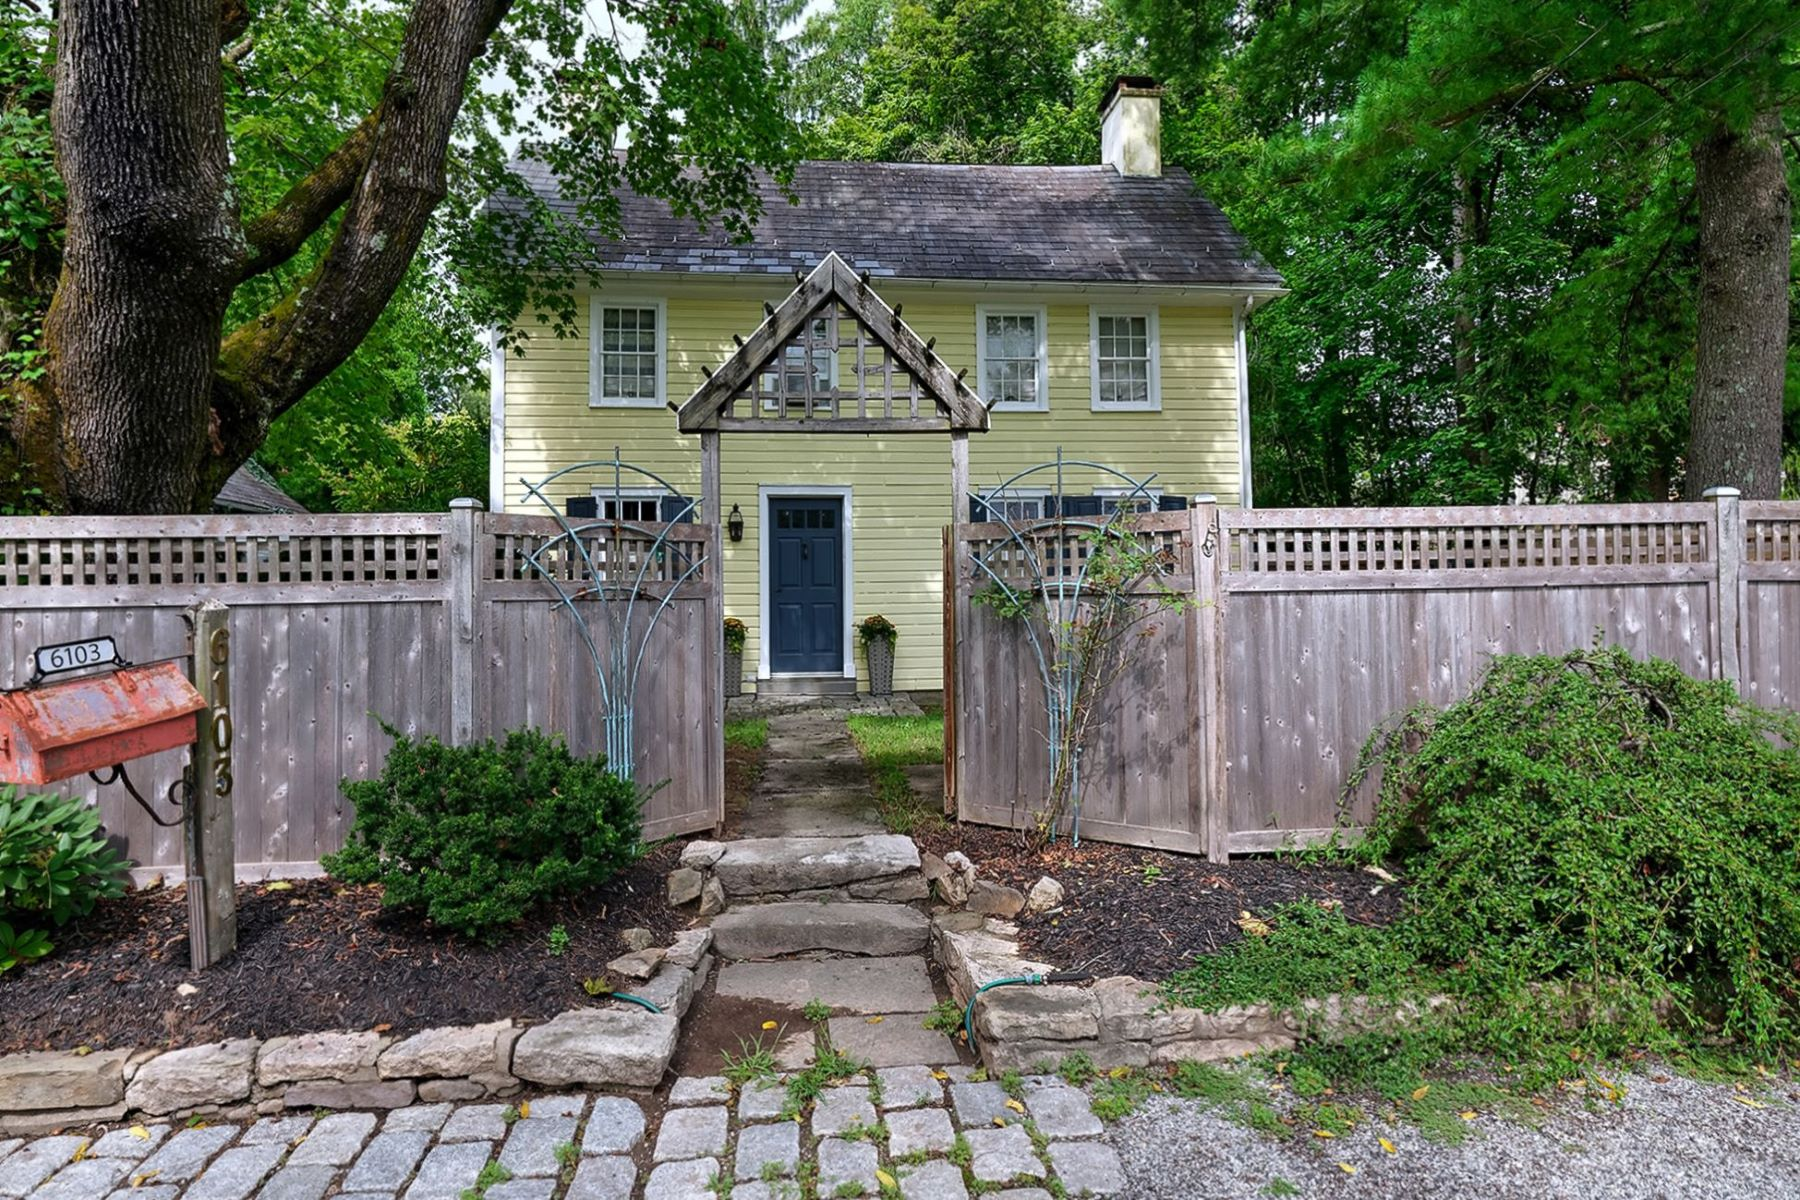 Single Family Homes for Sale at Perfect For Today's Way Of Life 6103 Upper York Road, New Hope, Pennsylvania 18938 United States